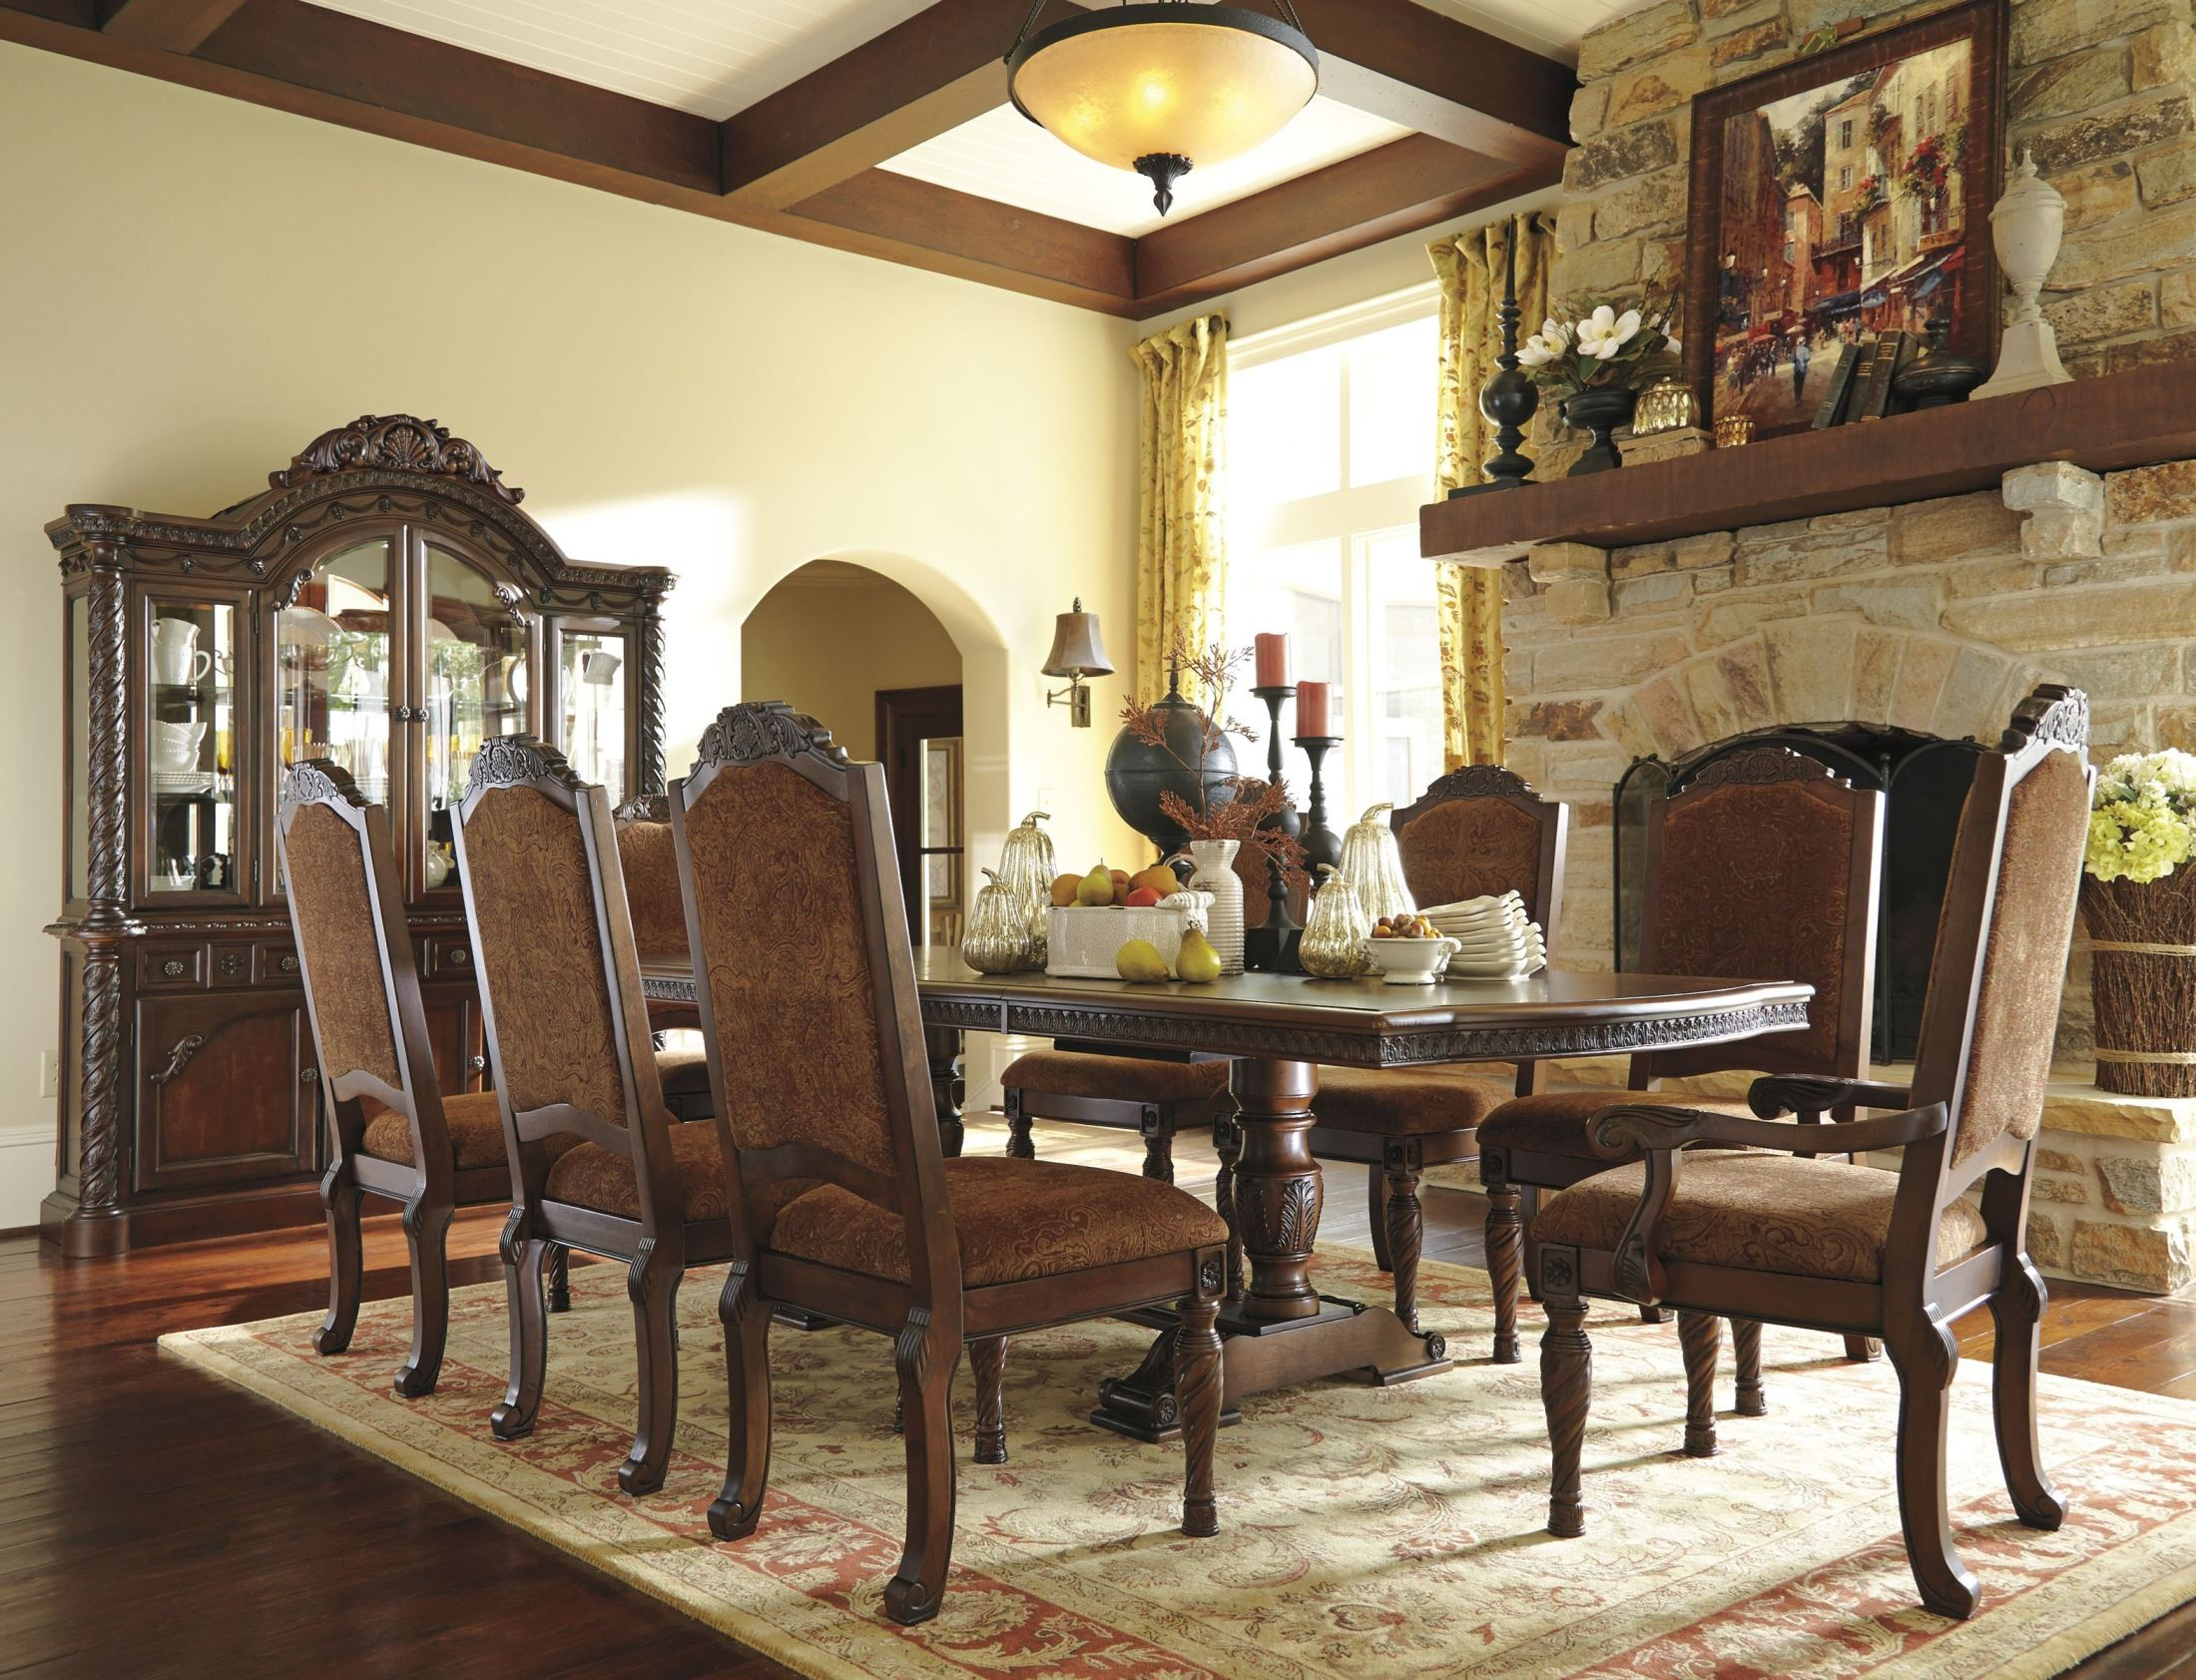 North Shore Double Pedestal Dining Room Set From Millennium By Ashley ·  2298846 · 2298696 · 2298695 · 1697918 Part 6